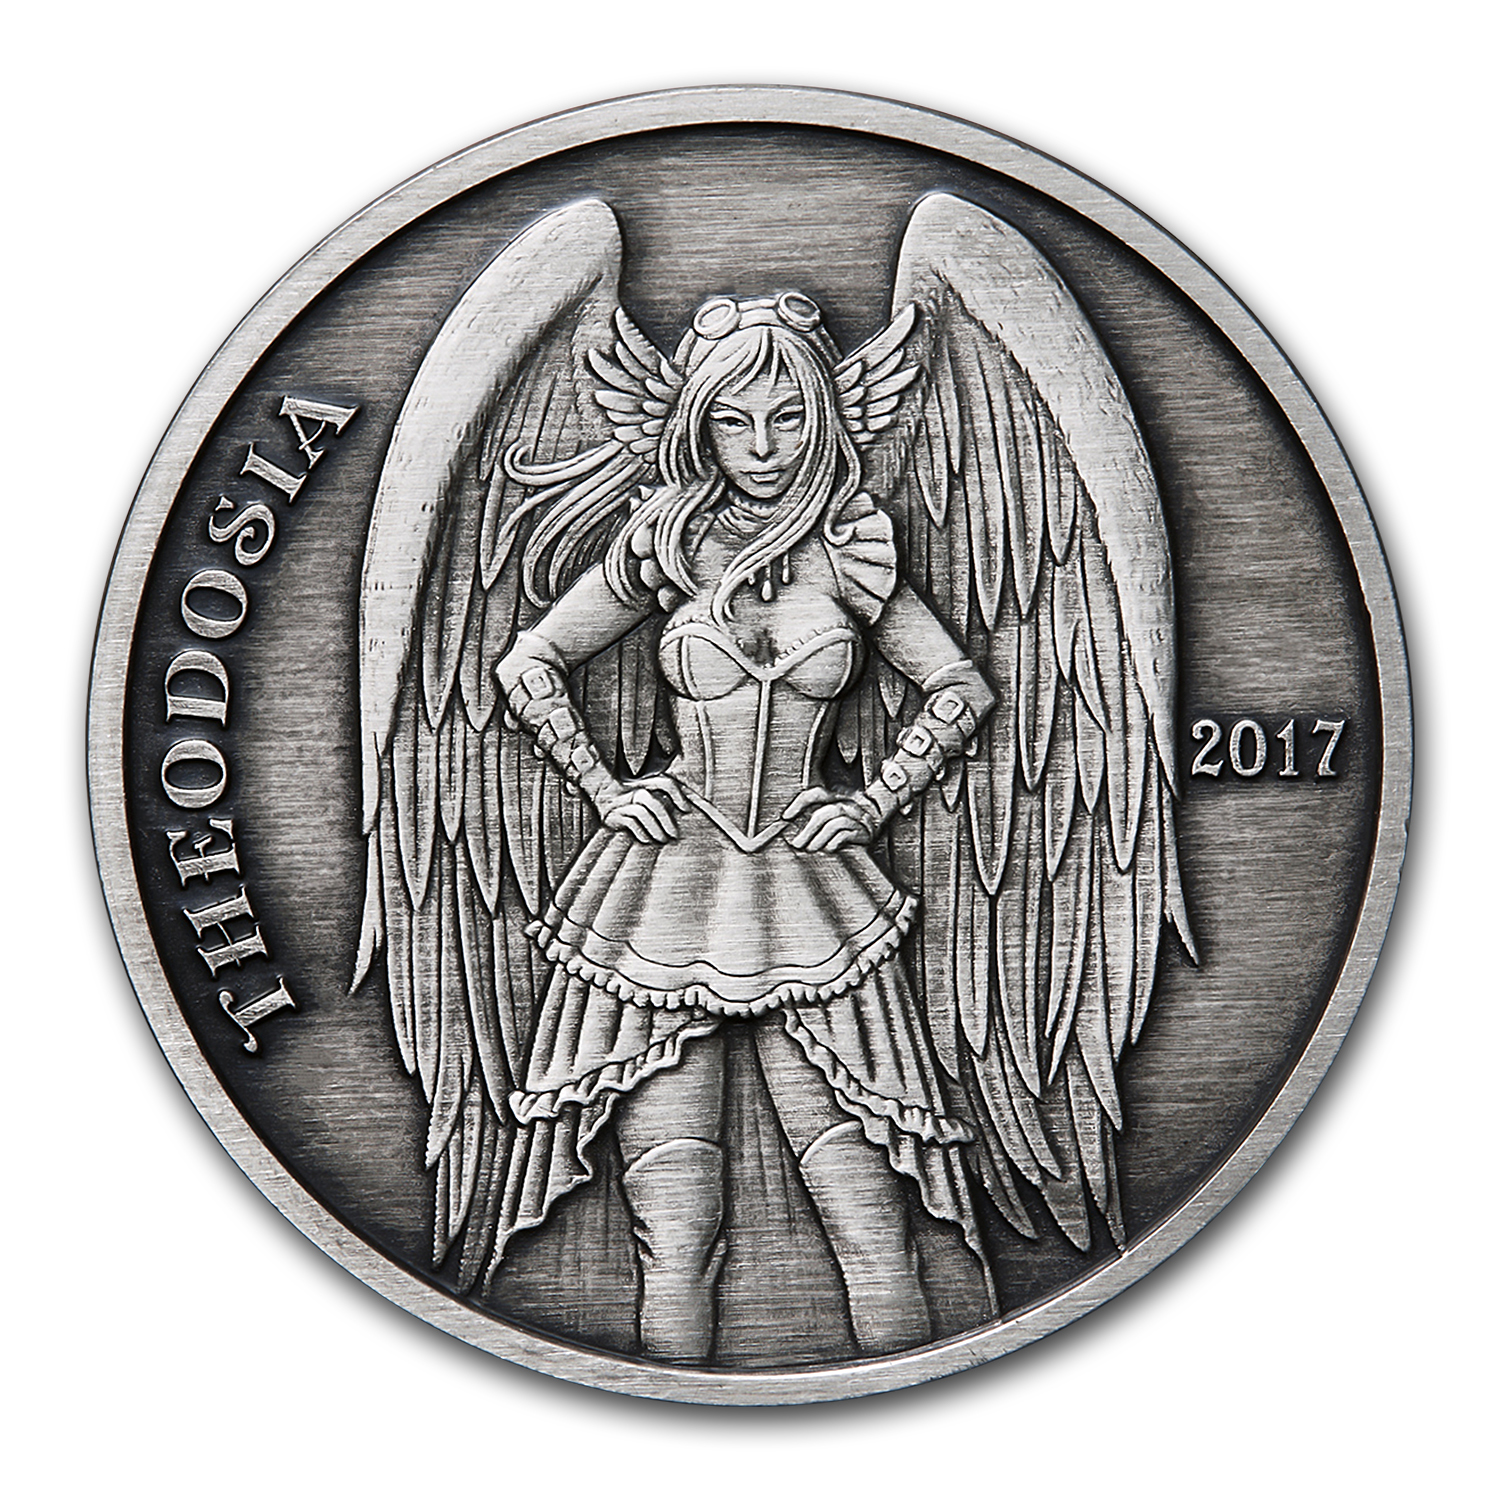 5 oz Silver Antique Round - Angels & Demons Series (Theodosia)